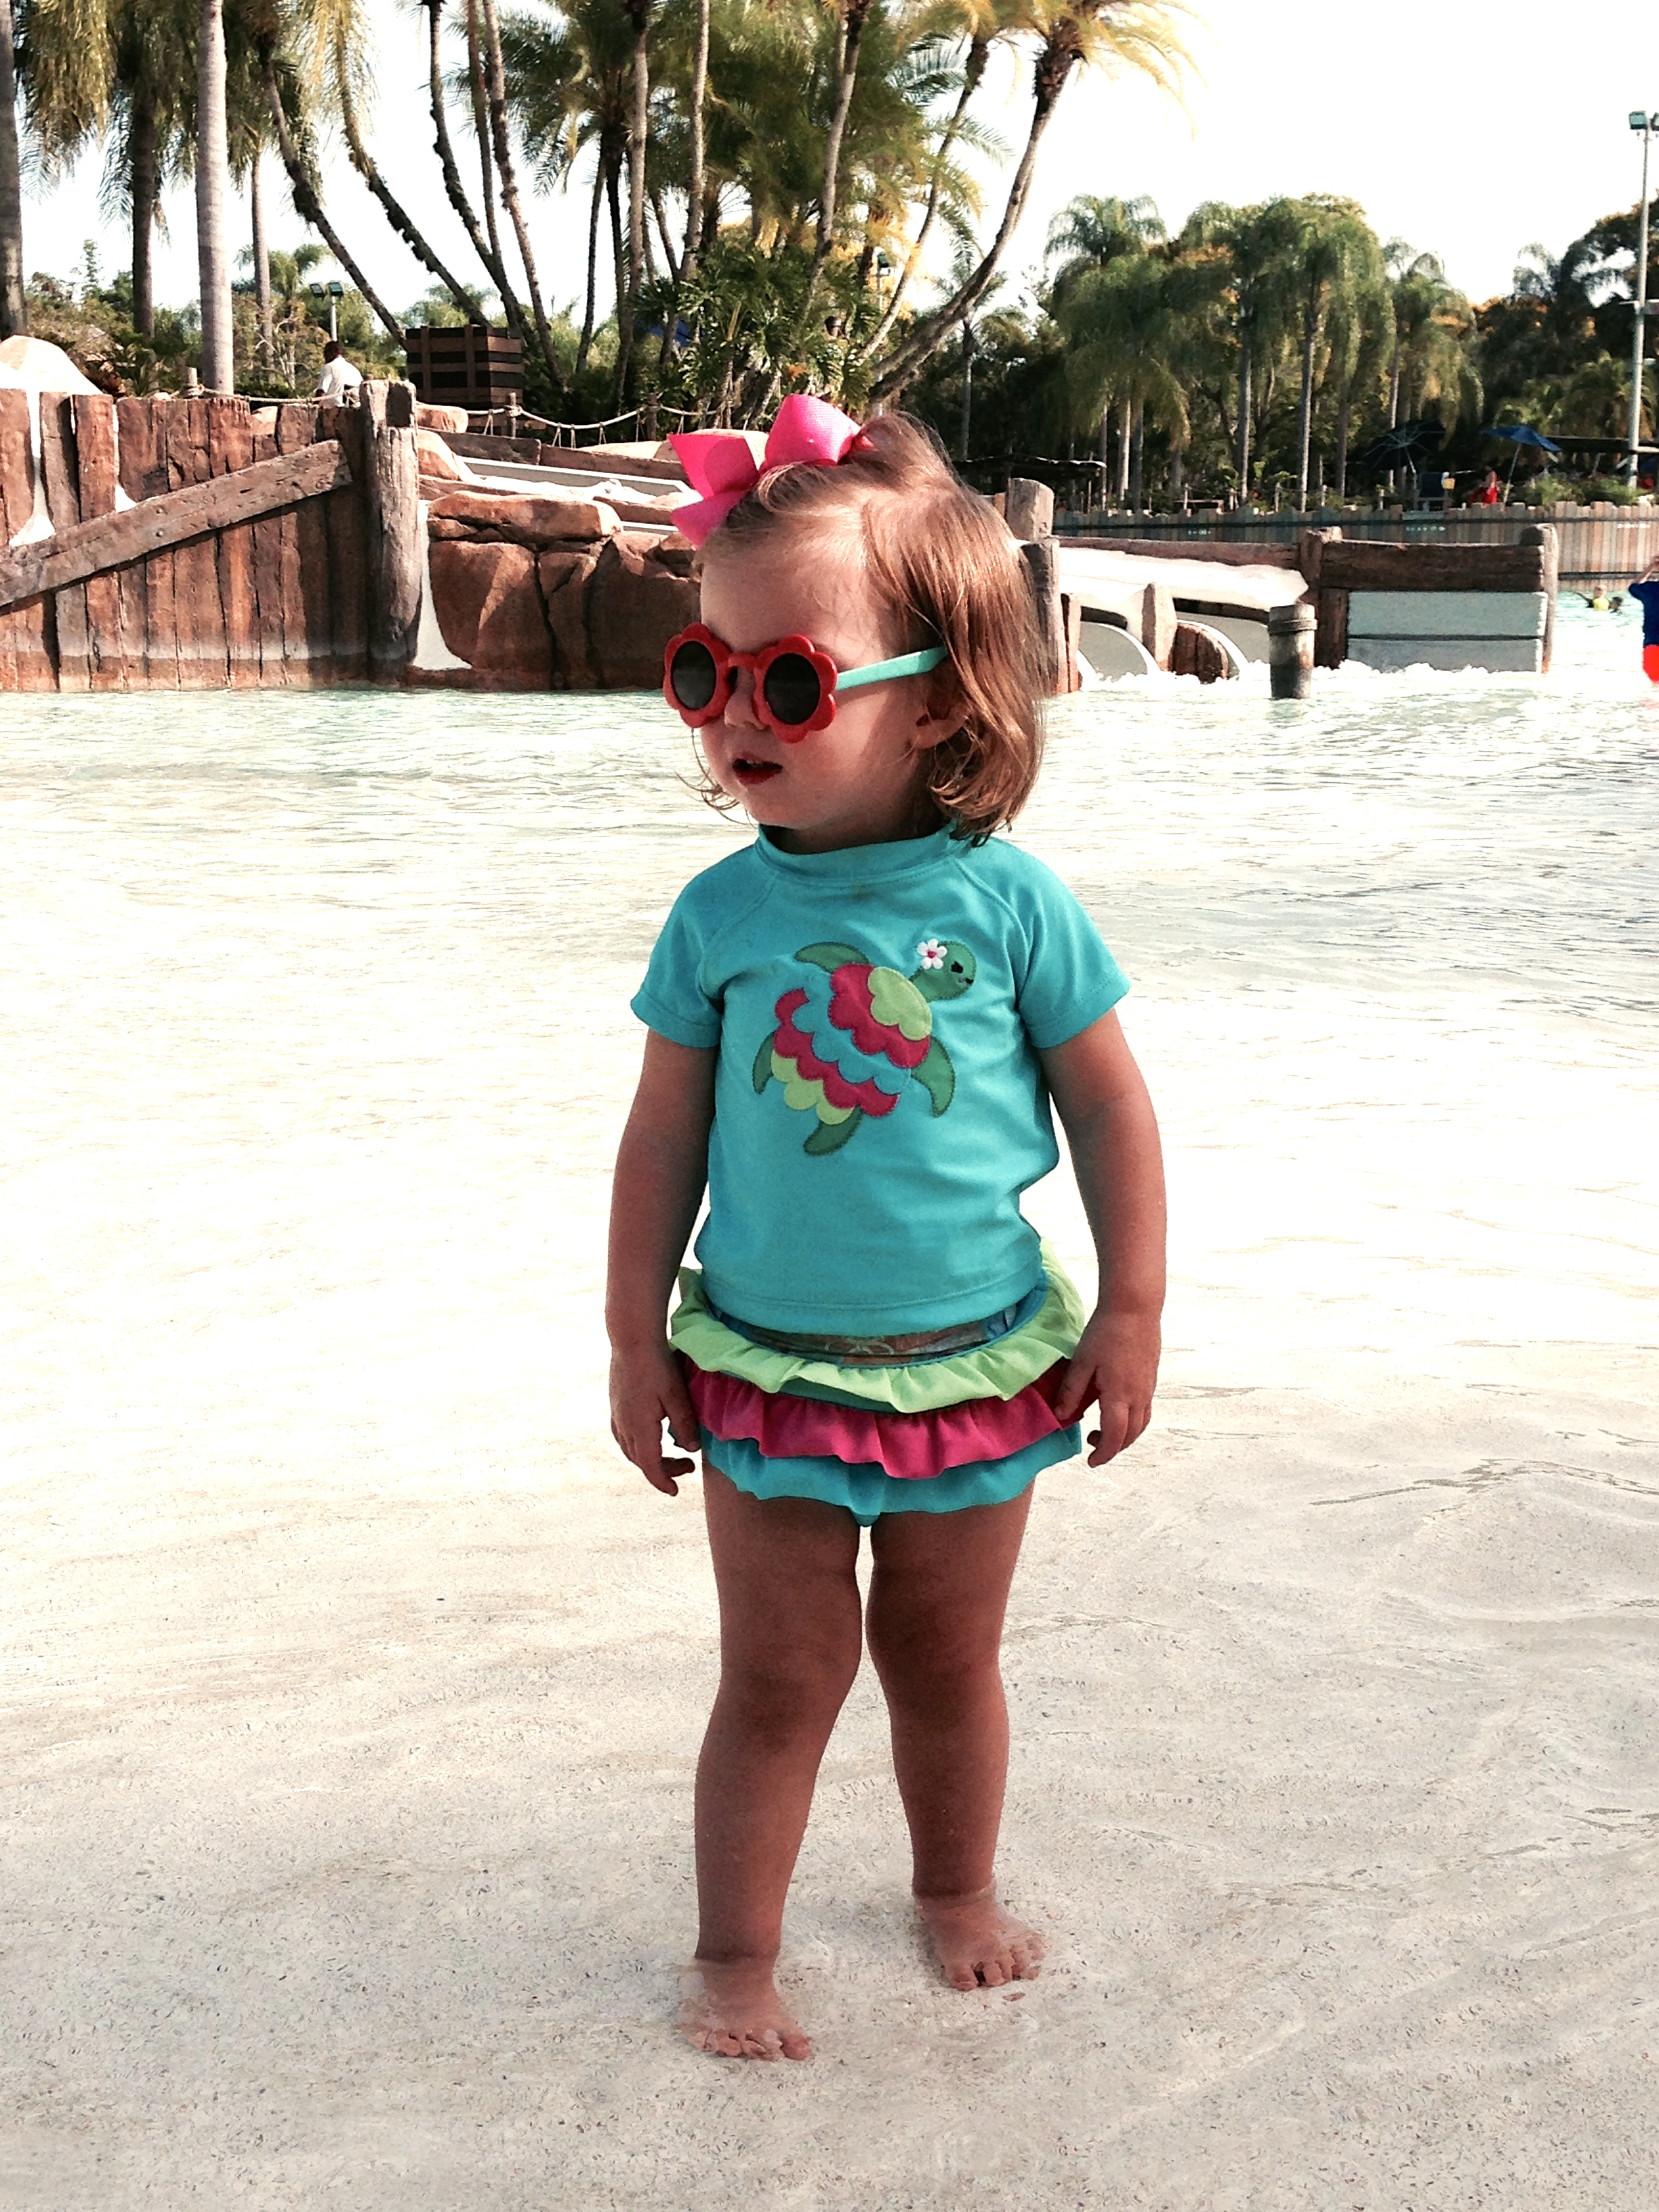 Loved Typhoon Lagoon!